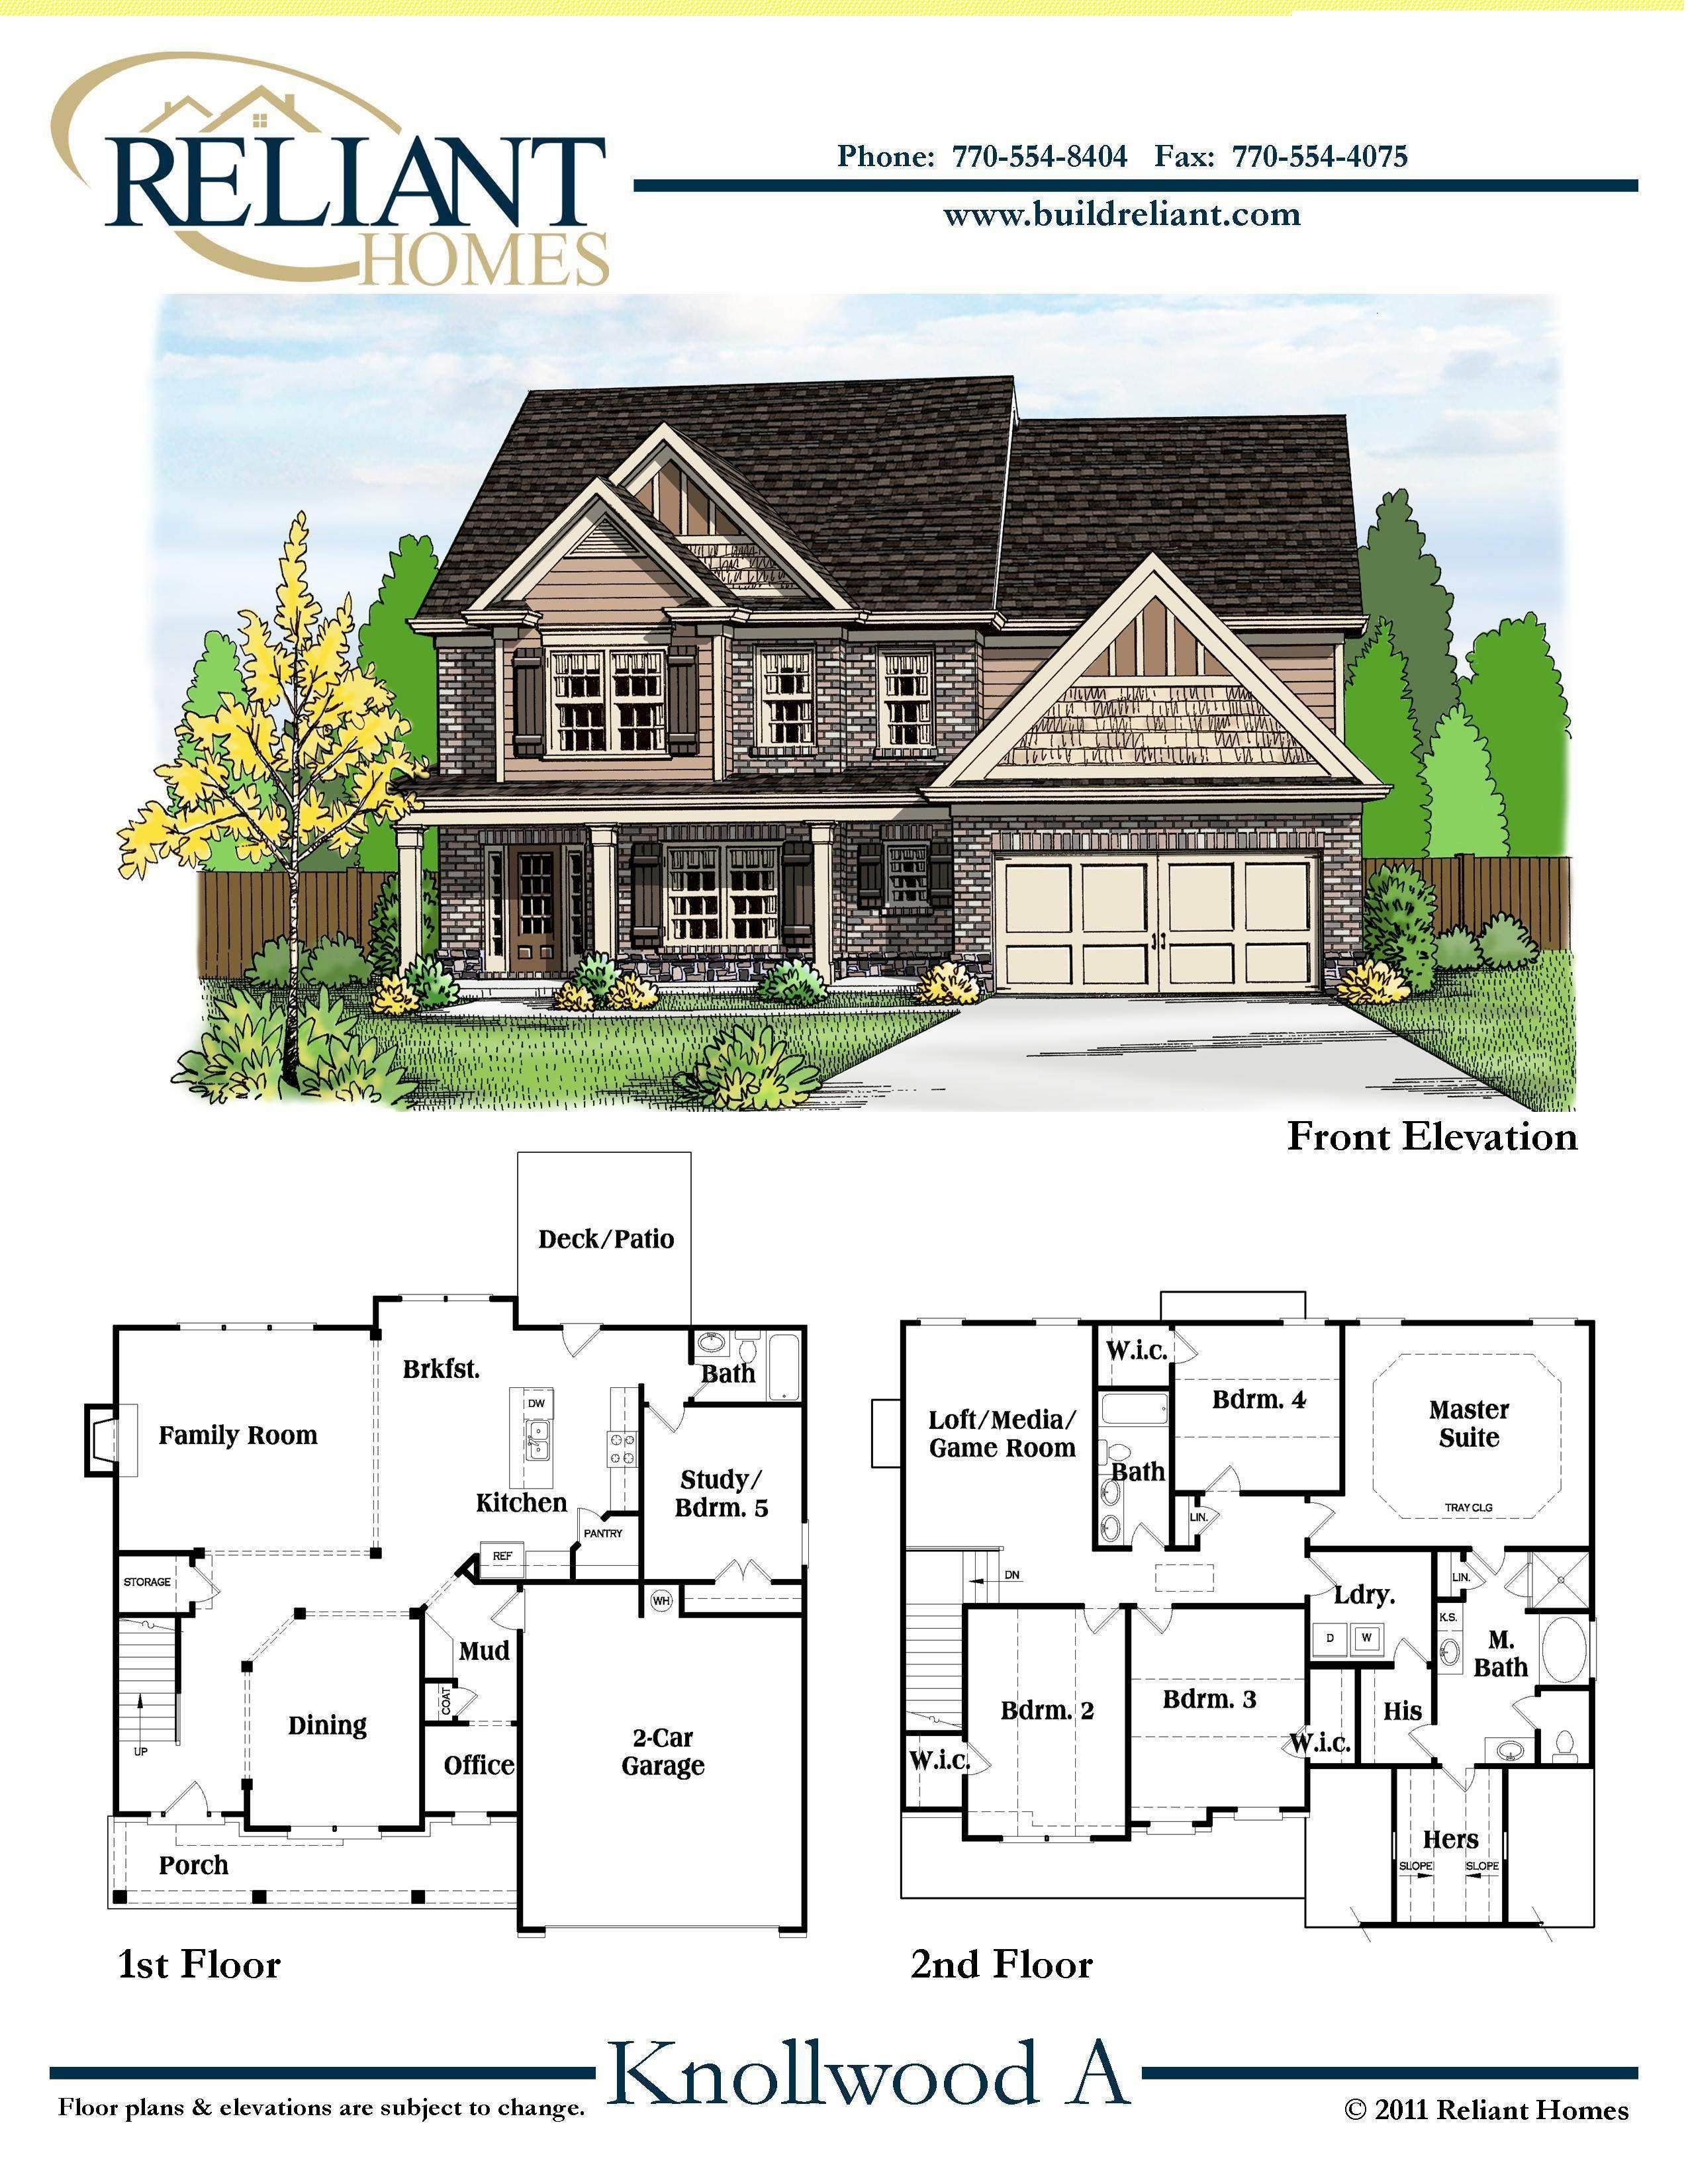 House Floor Plans for Sale Inspirational Reliant Homes the Knollwood A Plan Floor Plans